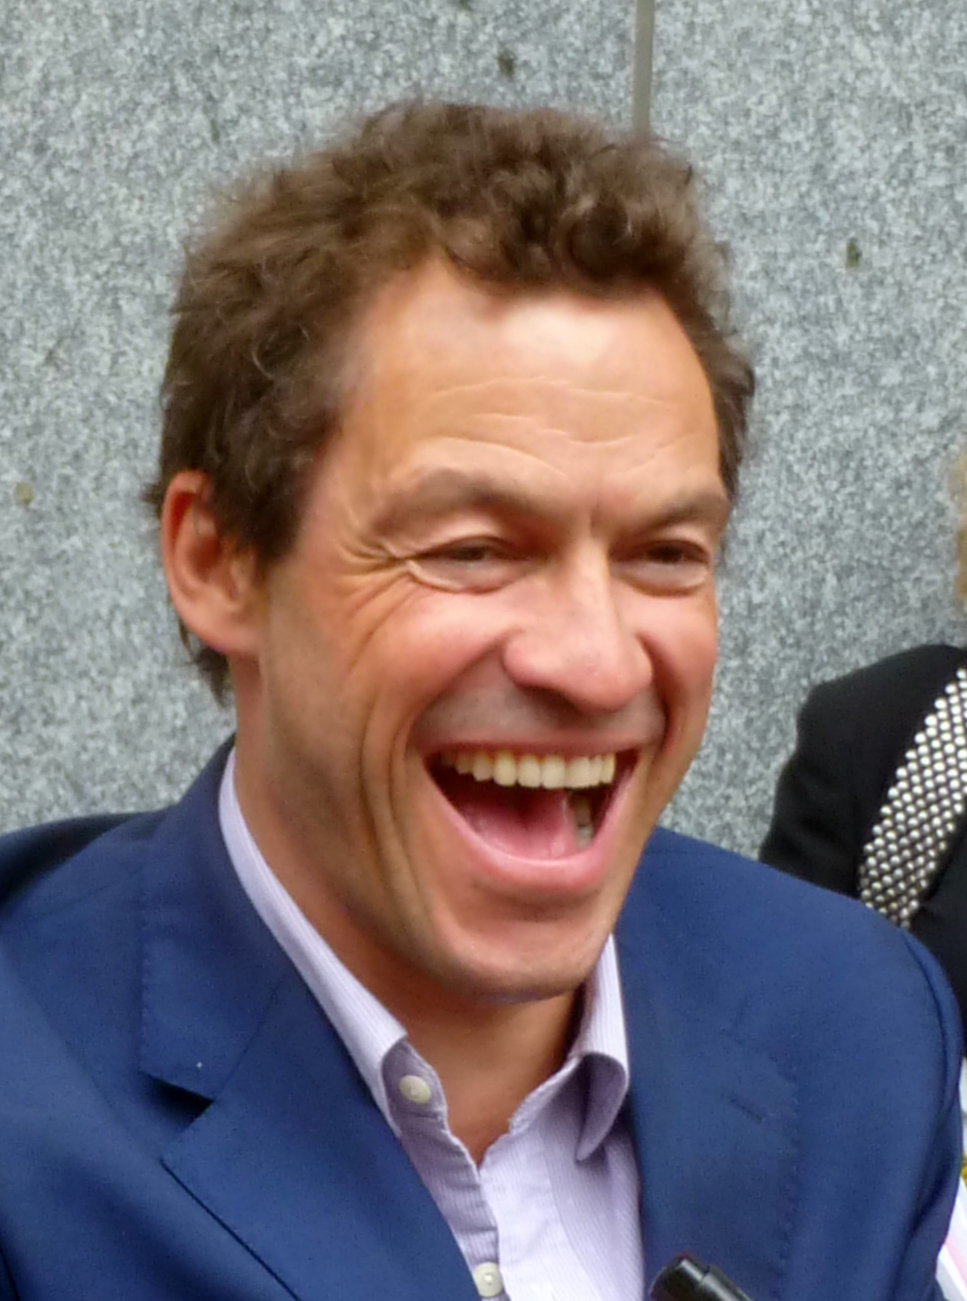 File Dominic West At The Premiere Of Pride 2014 Toronto Film Festival Cropped 2 Jpg Wikimedia Commons